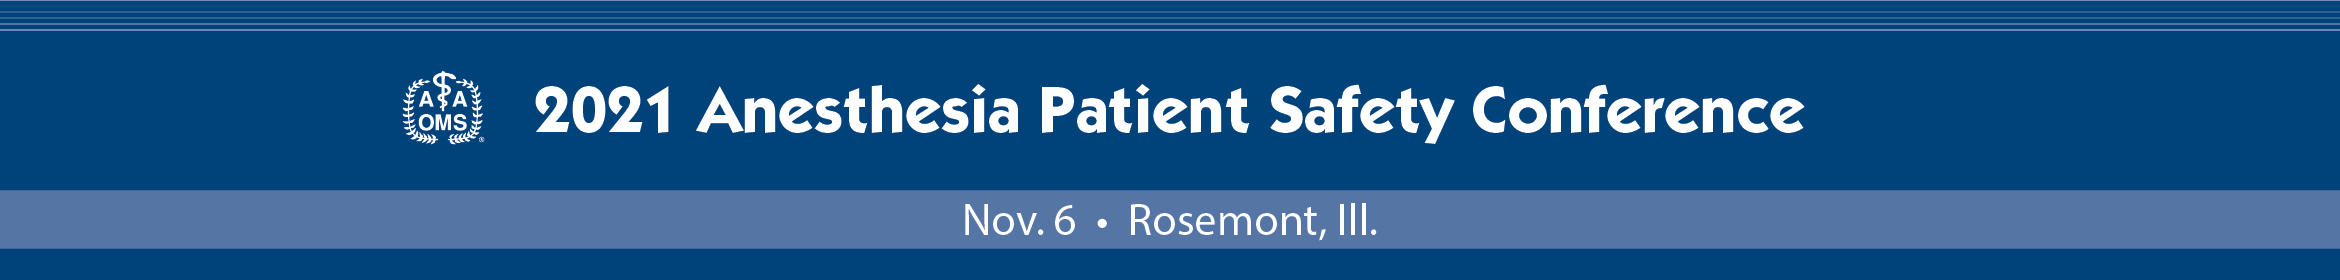 2021 AAOMS Anesthesia Patient Safety Conference Main banner